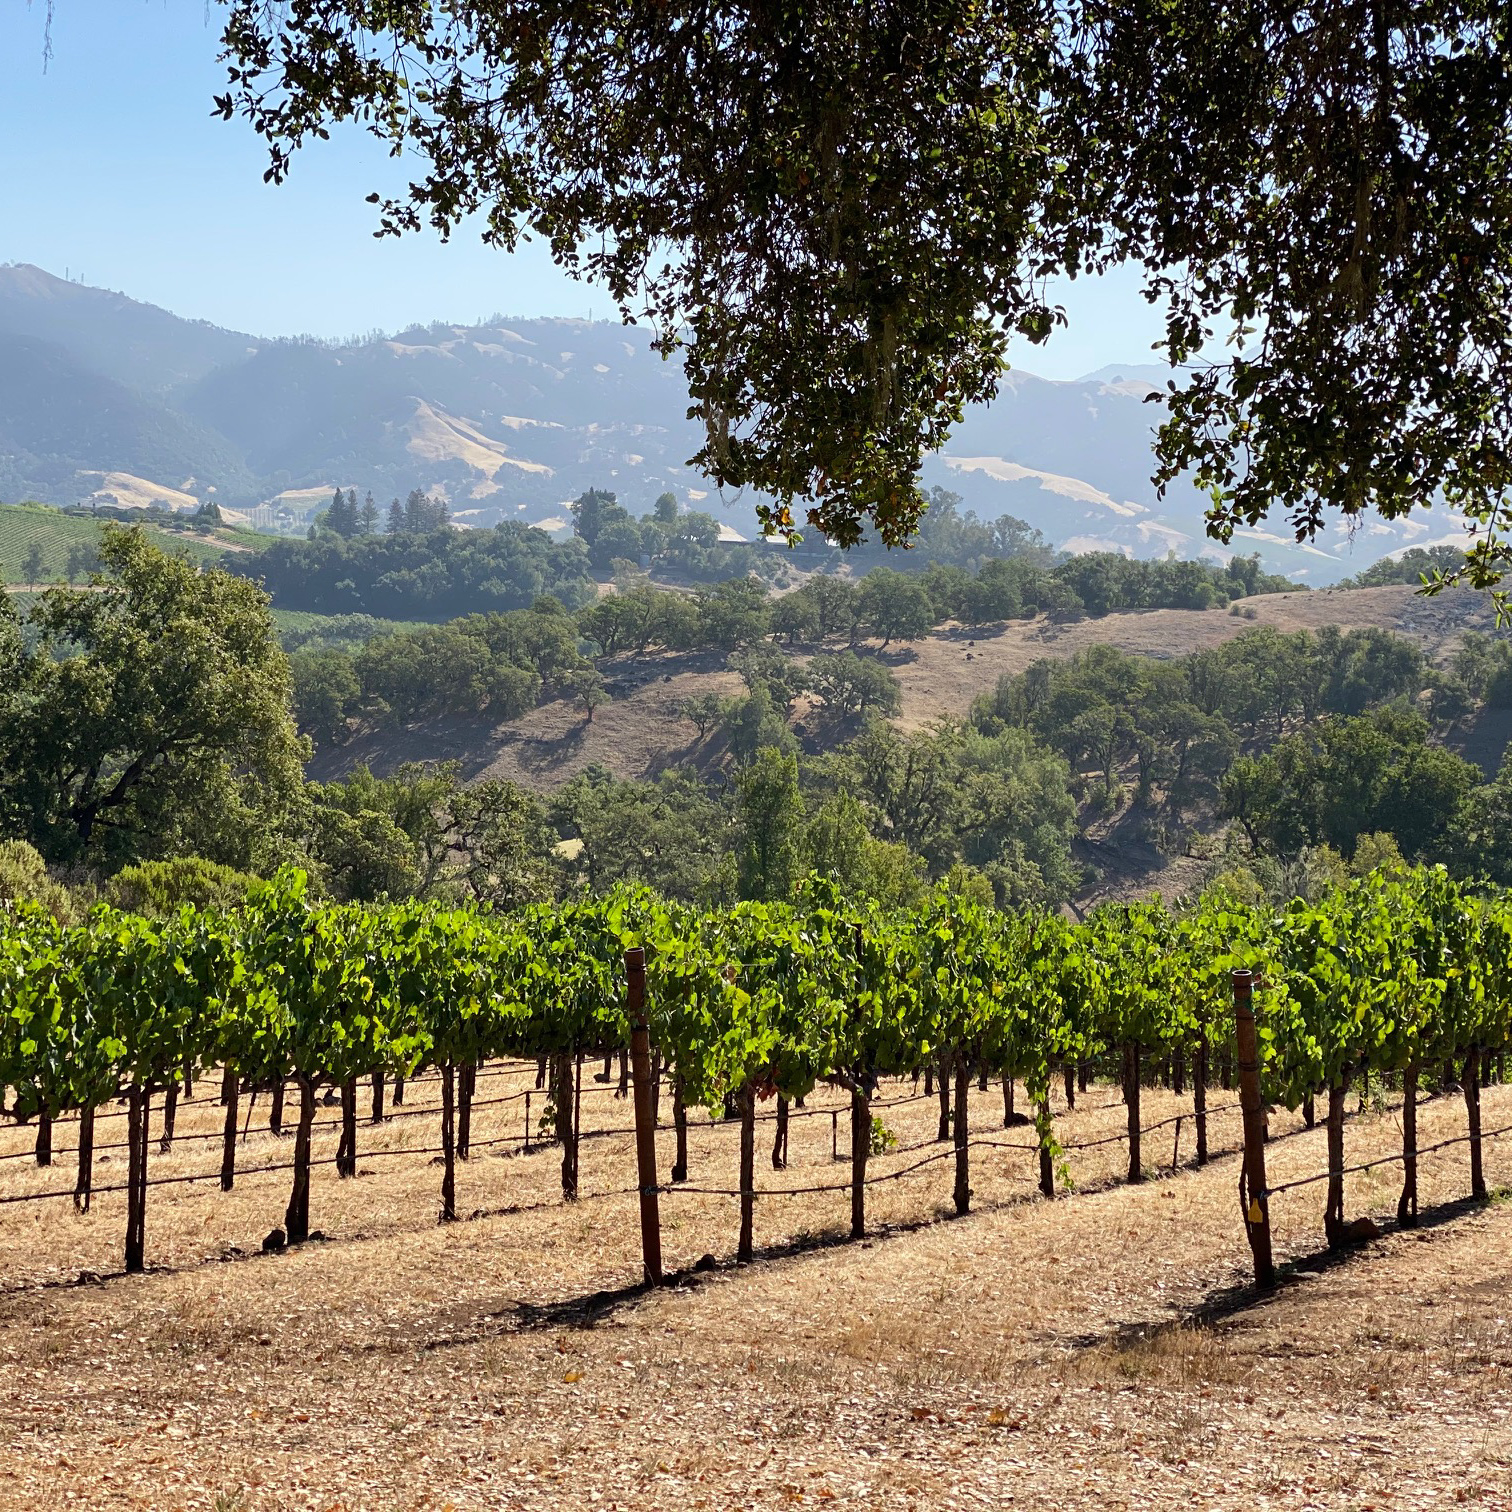 Vineyard views in California's Sonoma County.